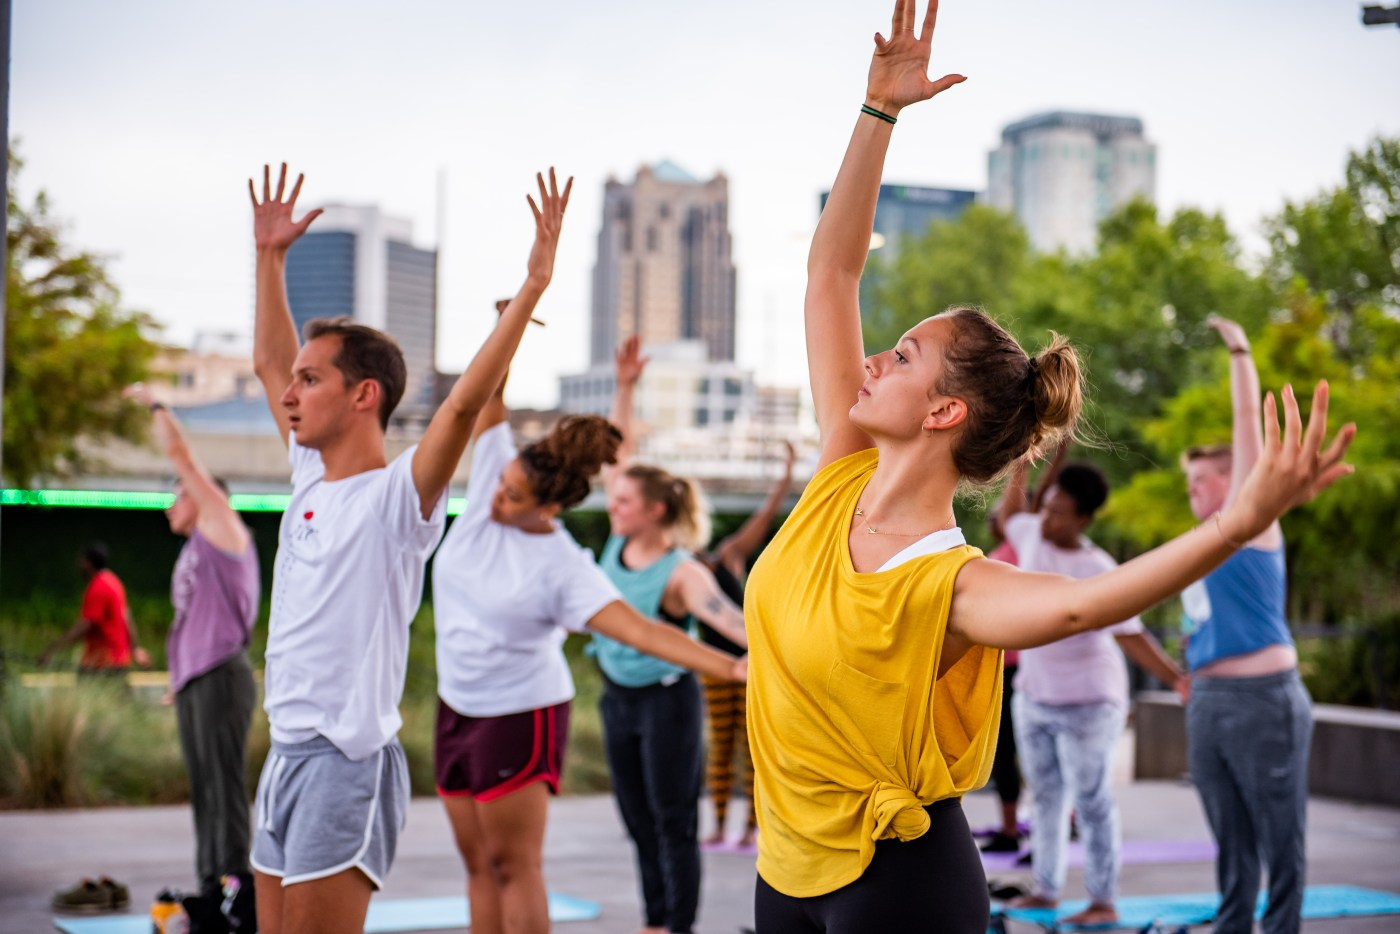 free exercise classes in railroad park